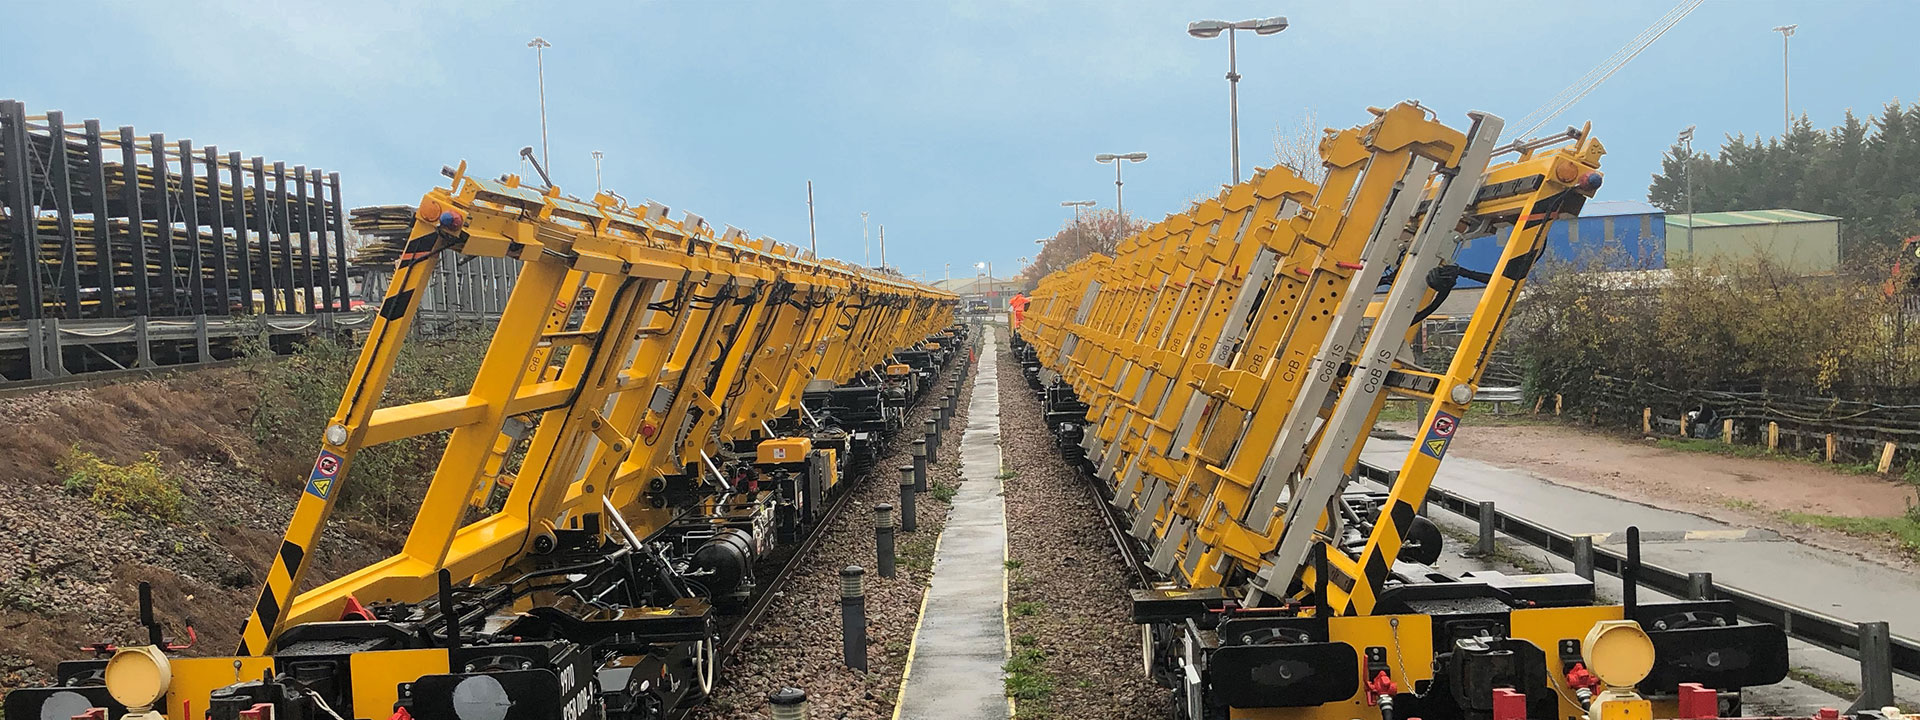 Design Acceptance of Kirow Crane and Switch Tilting wagons